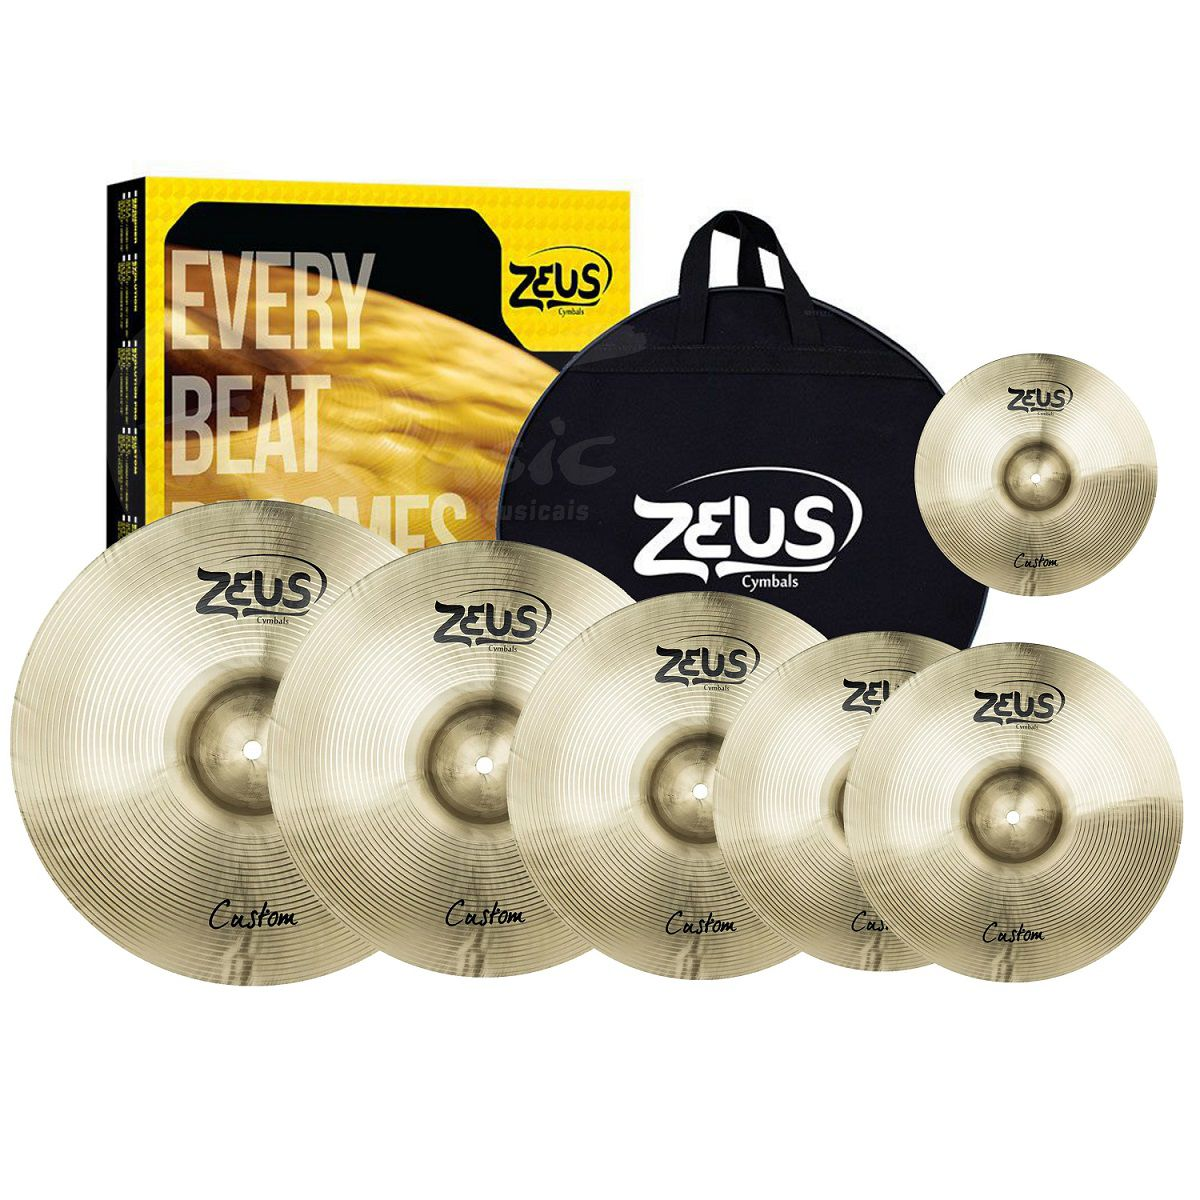 KIT DE PRATO ZEUS B20 CUSTOM SET E 10 14 16 18 20 COM BAG